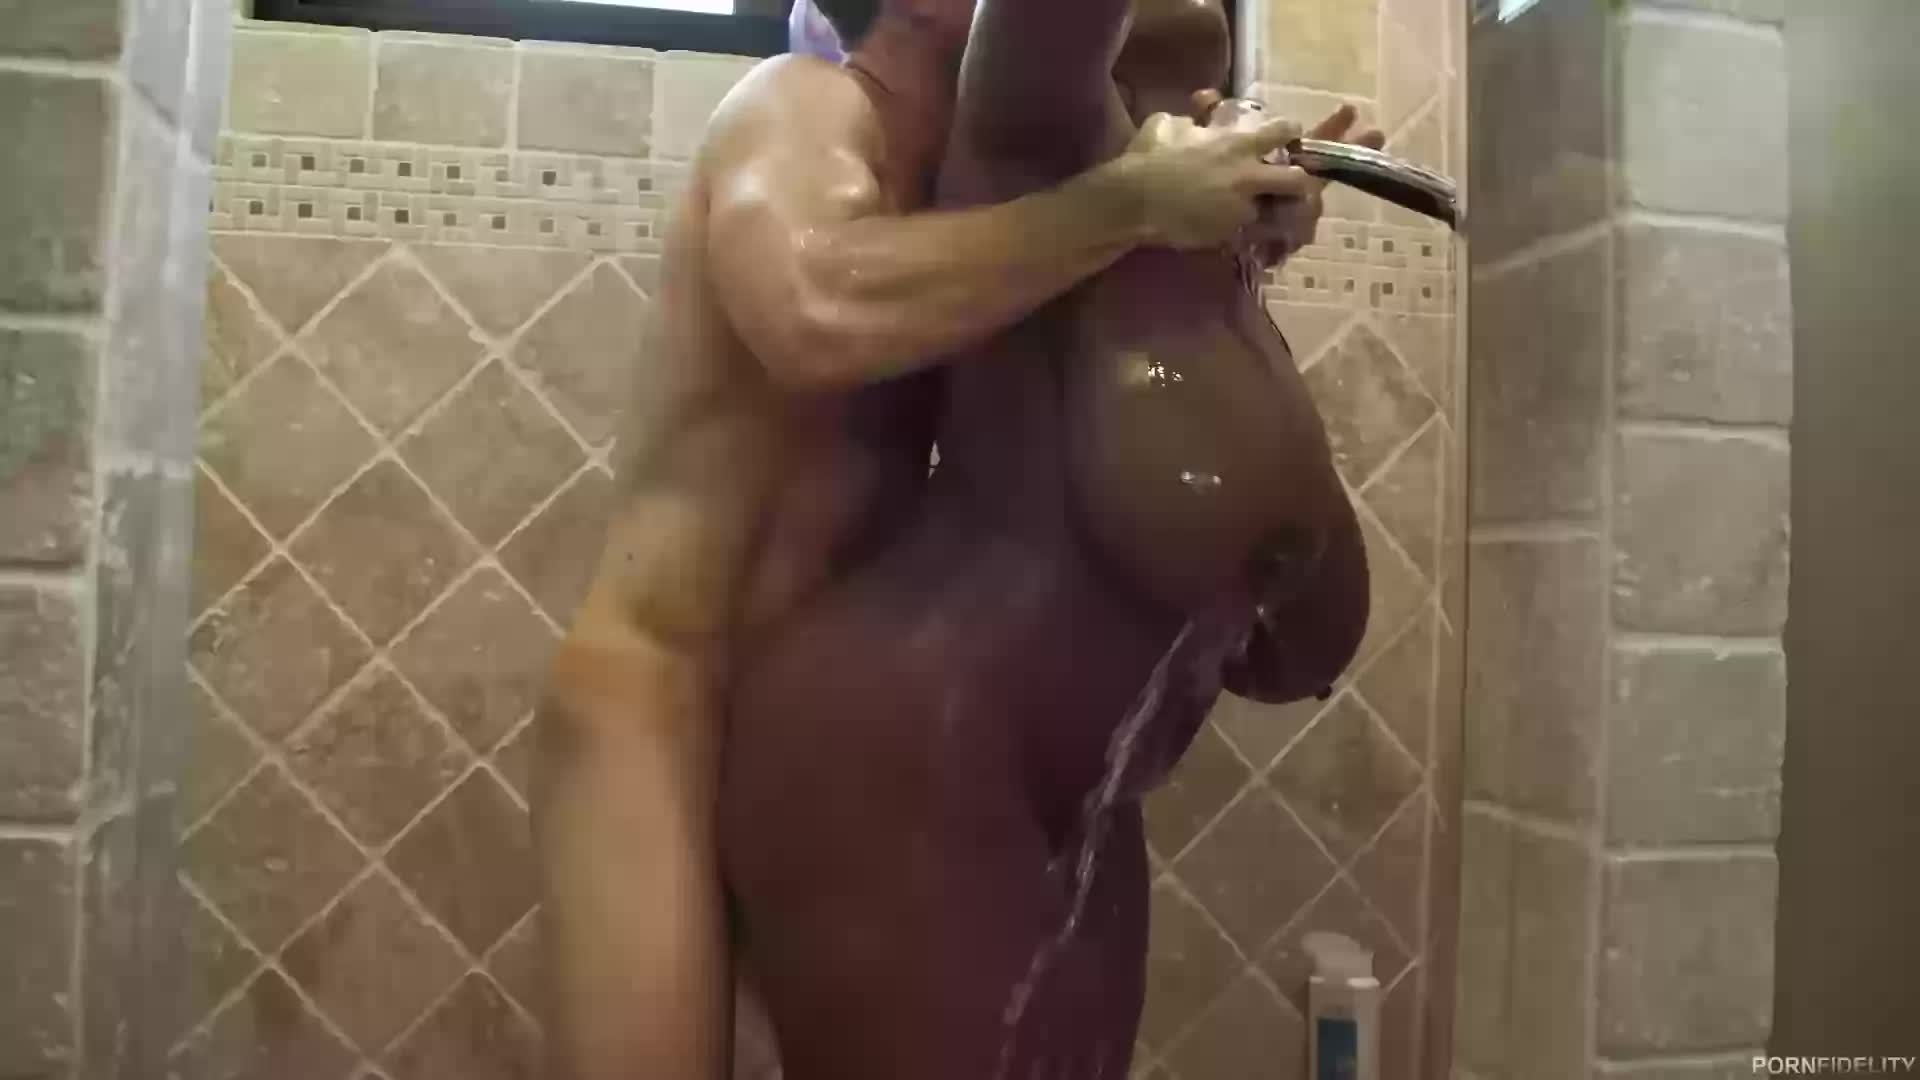 Gifs of girls getting butt fucked in the shower tits cocksucker soapstar